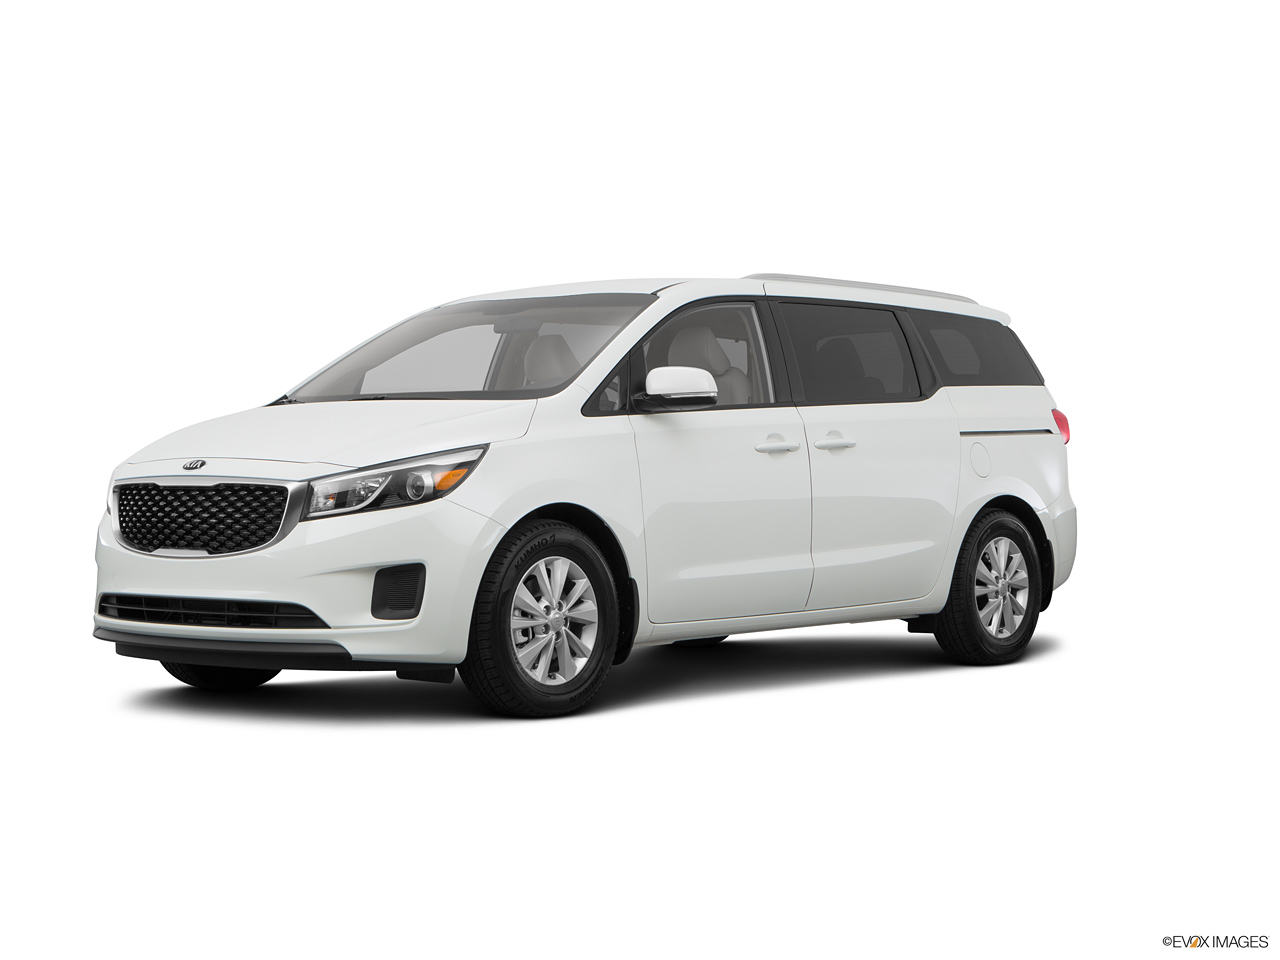 Kia carnival 2017 3 3l base in uae new car prices specs for Motor vehicle services phoenix